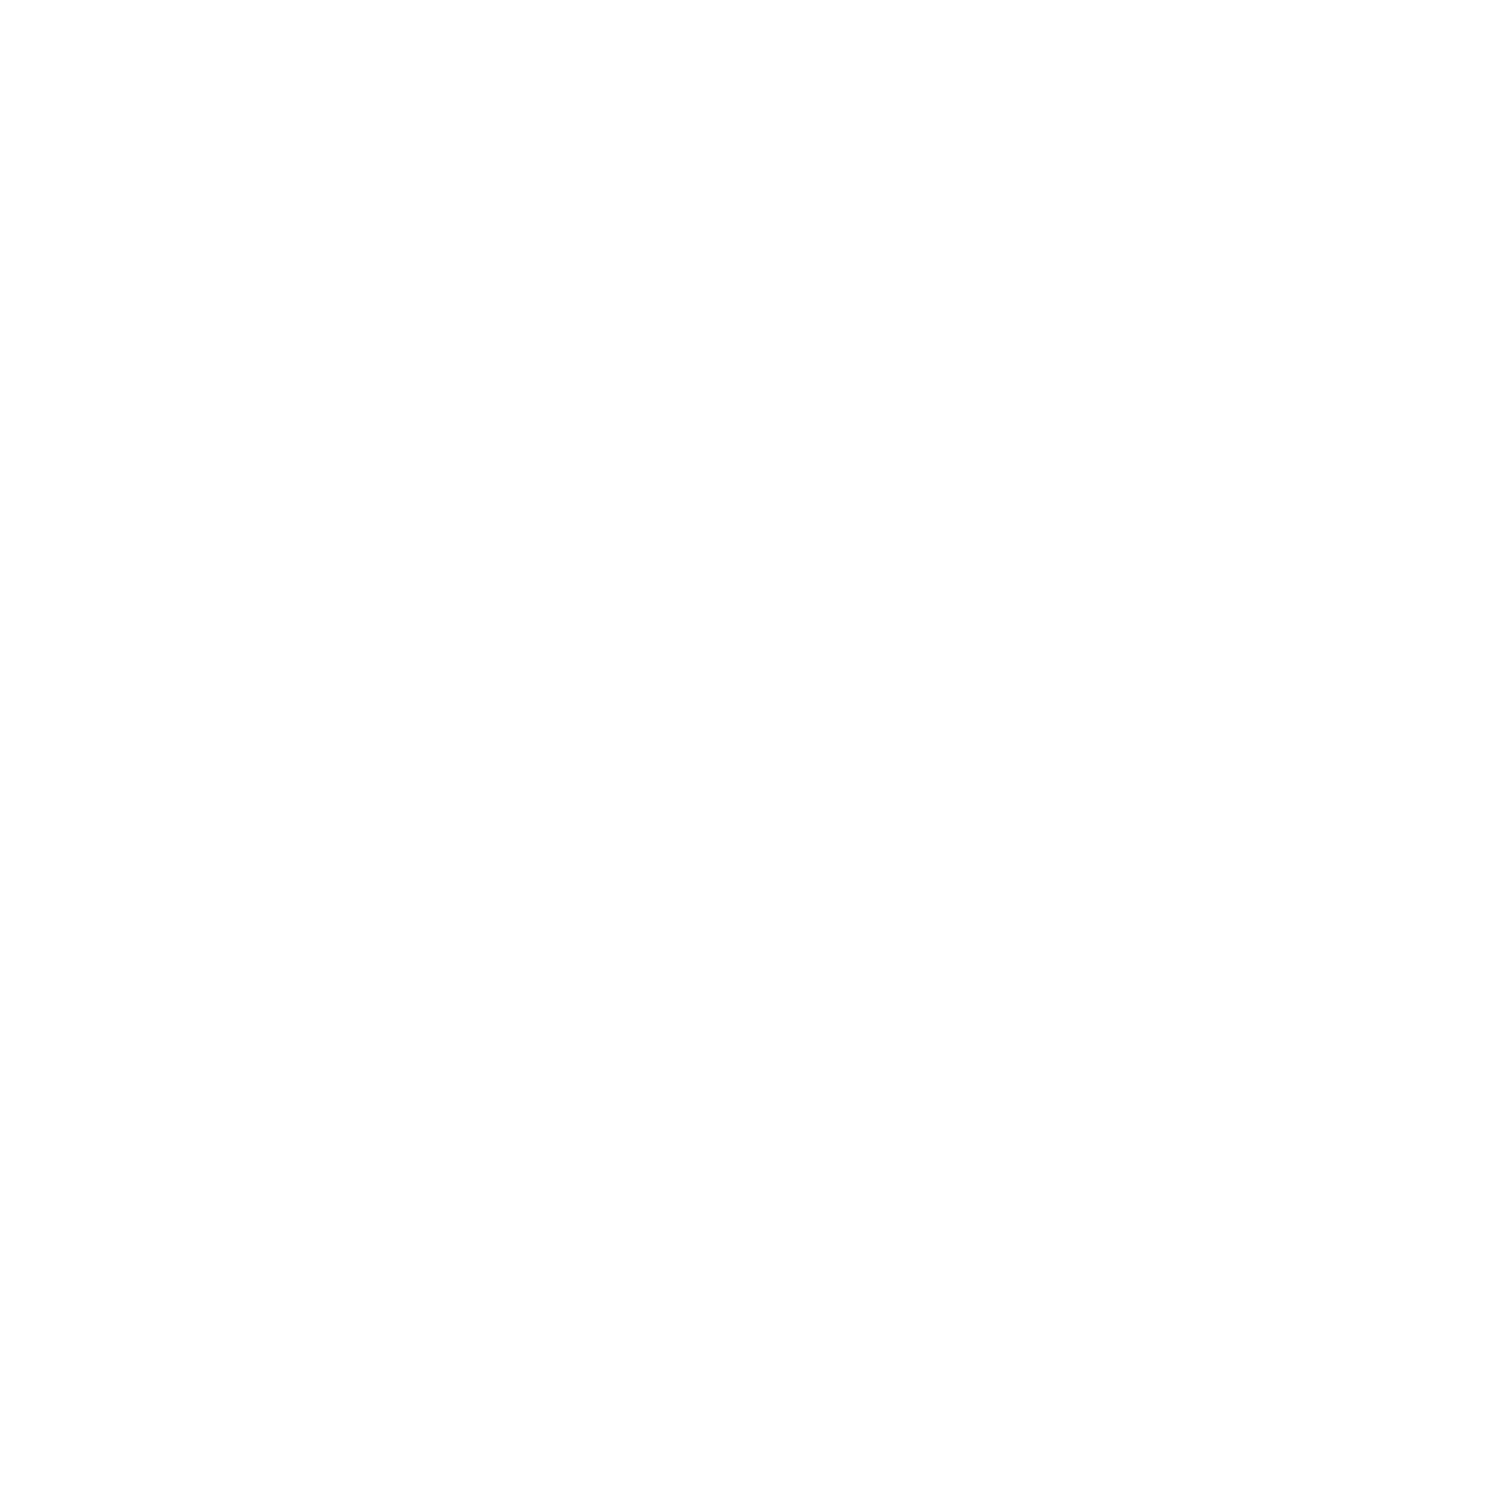 Bread We Break